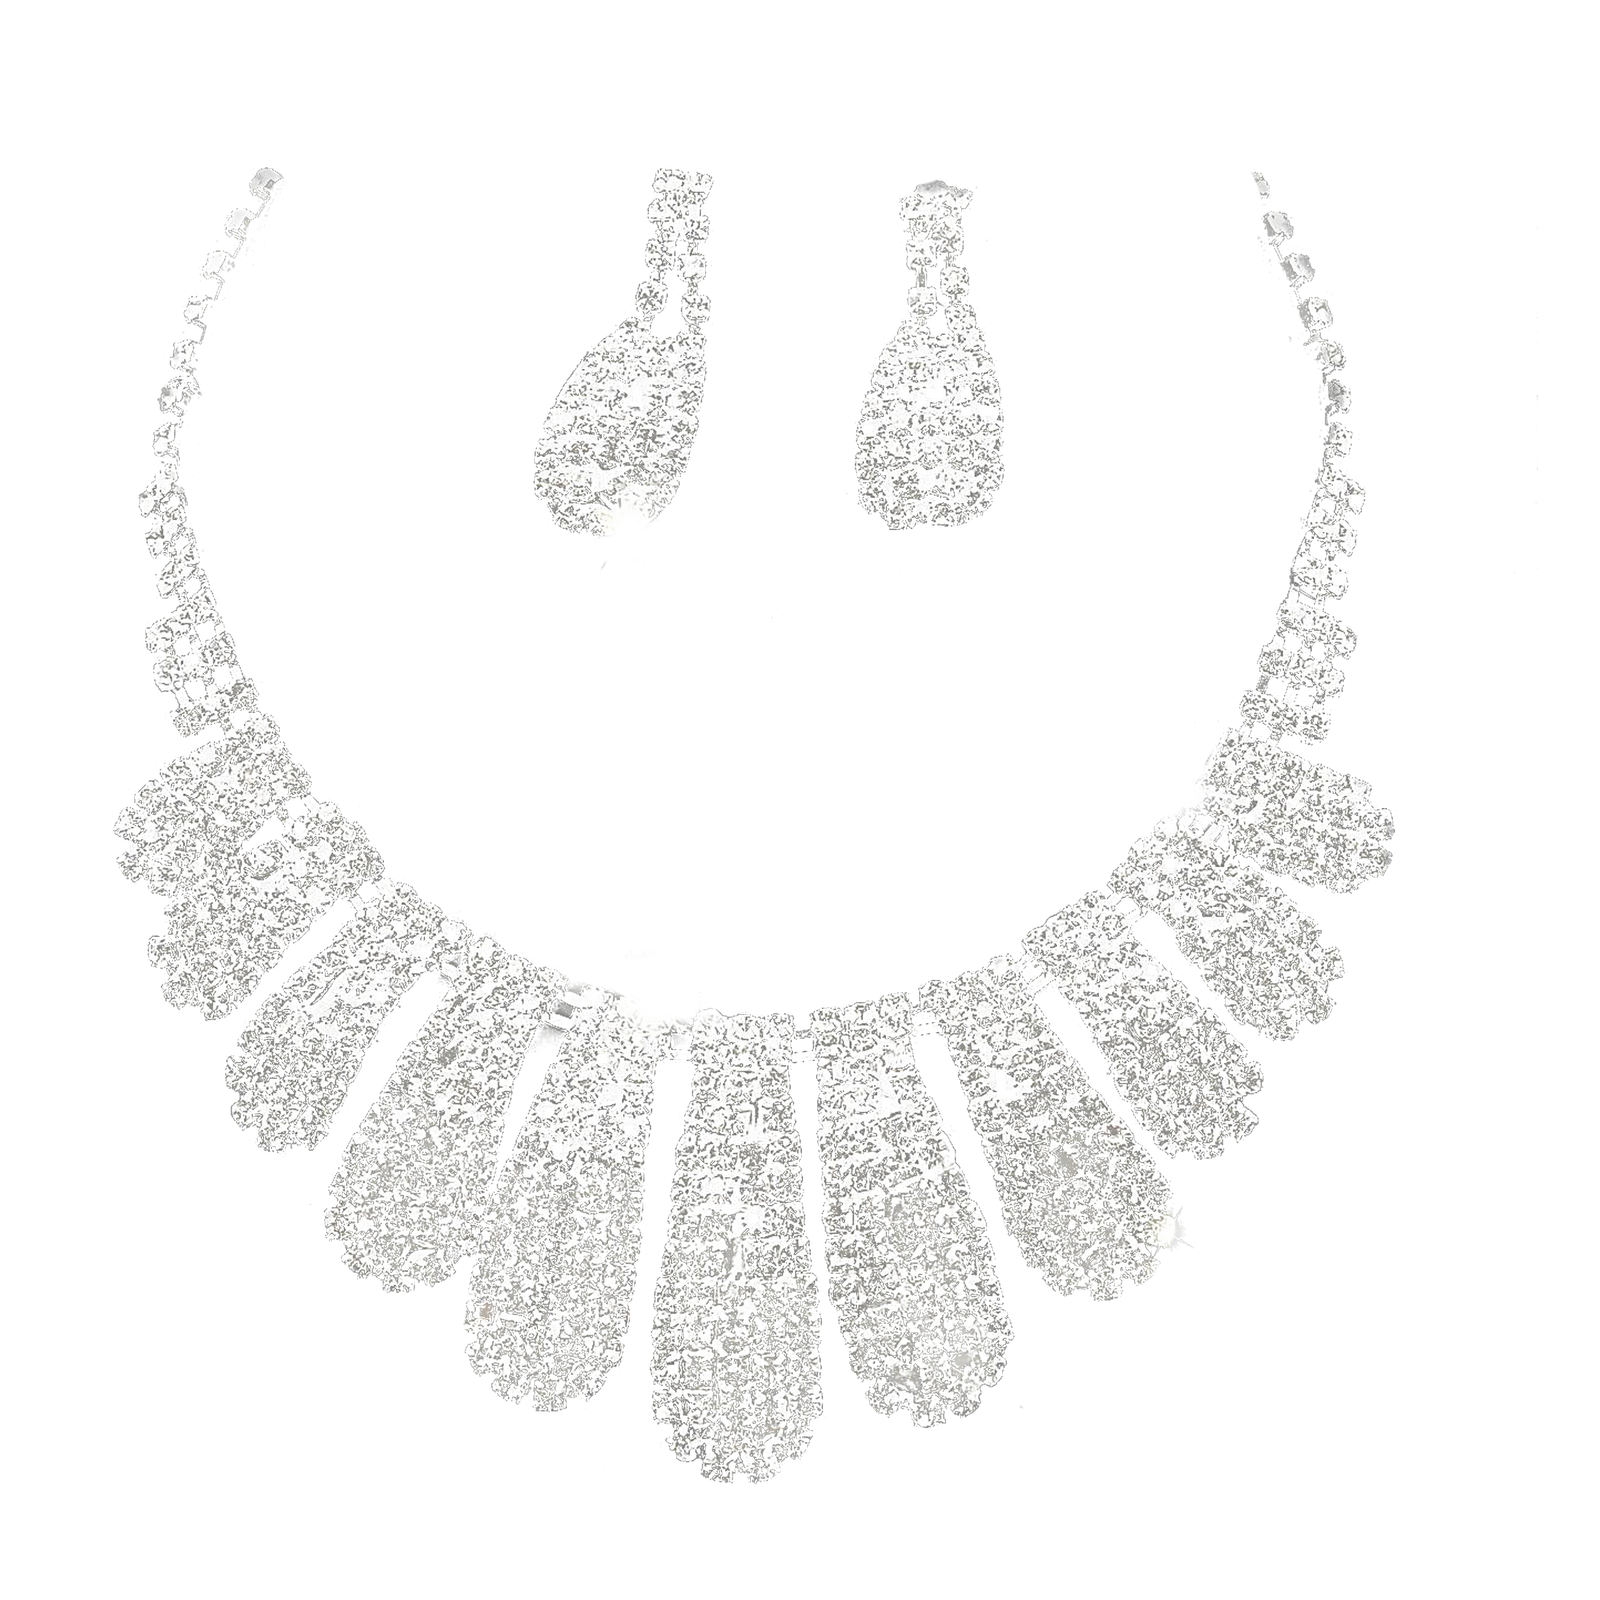 COLLARES Y ARETES, PNG,